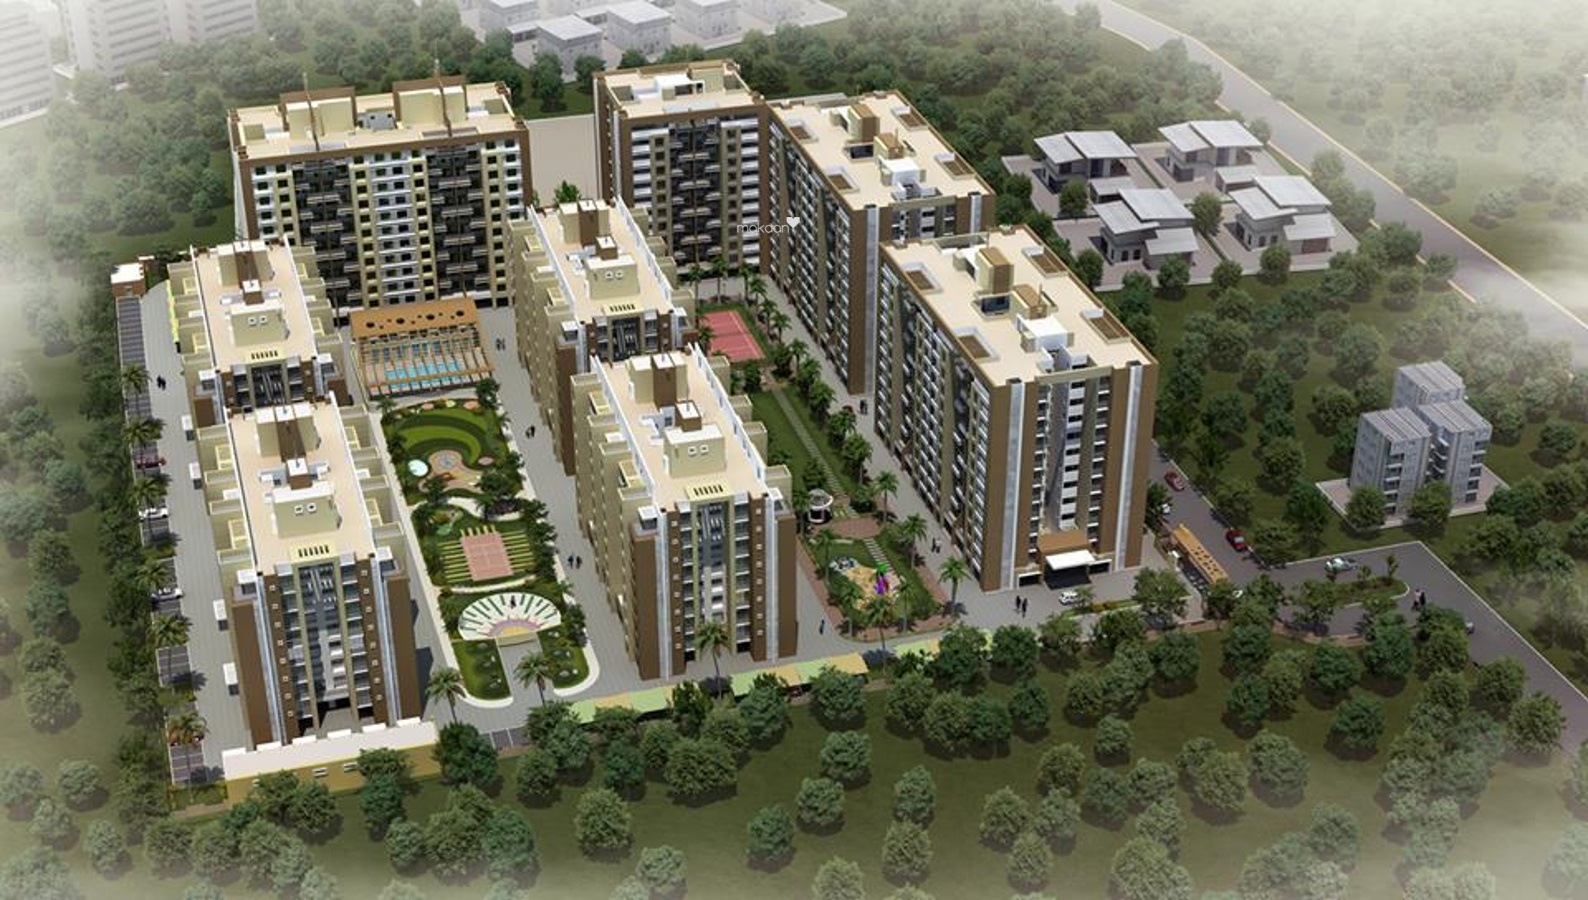 950 sq ft 2BHK 2BHK+2T (950 sq ft) Property By Raviraj Real Estate In Park Xpress, Baner